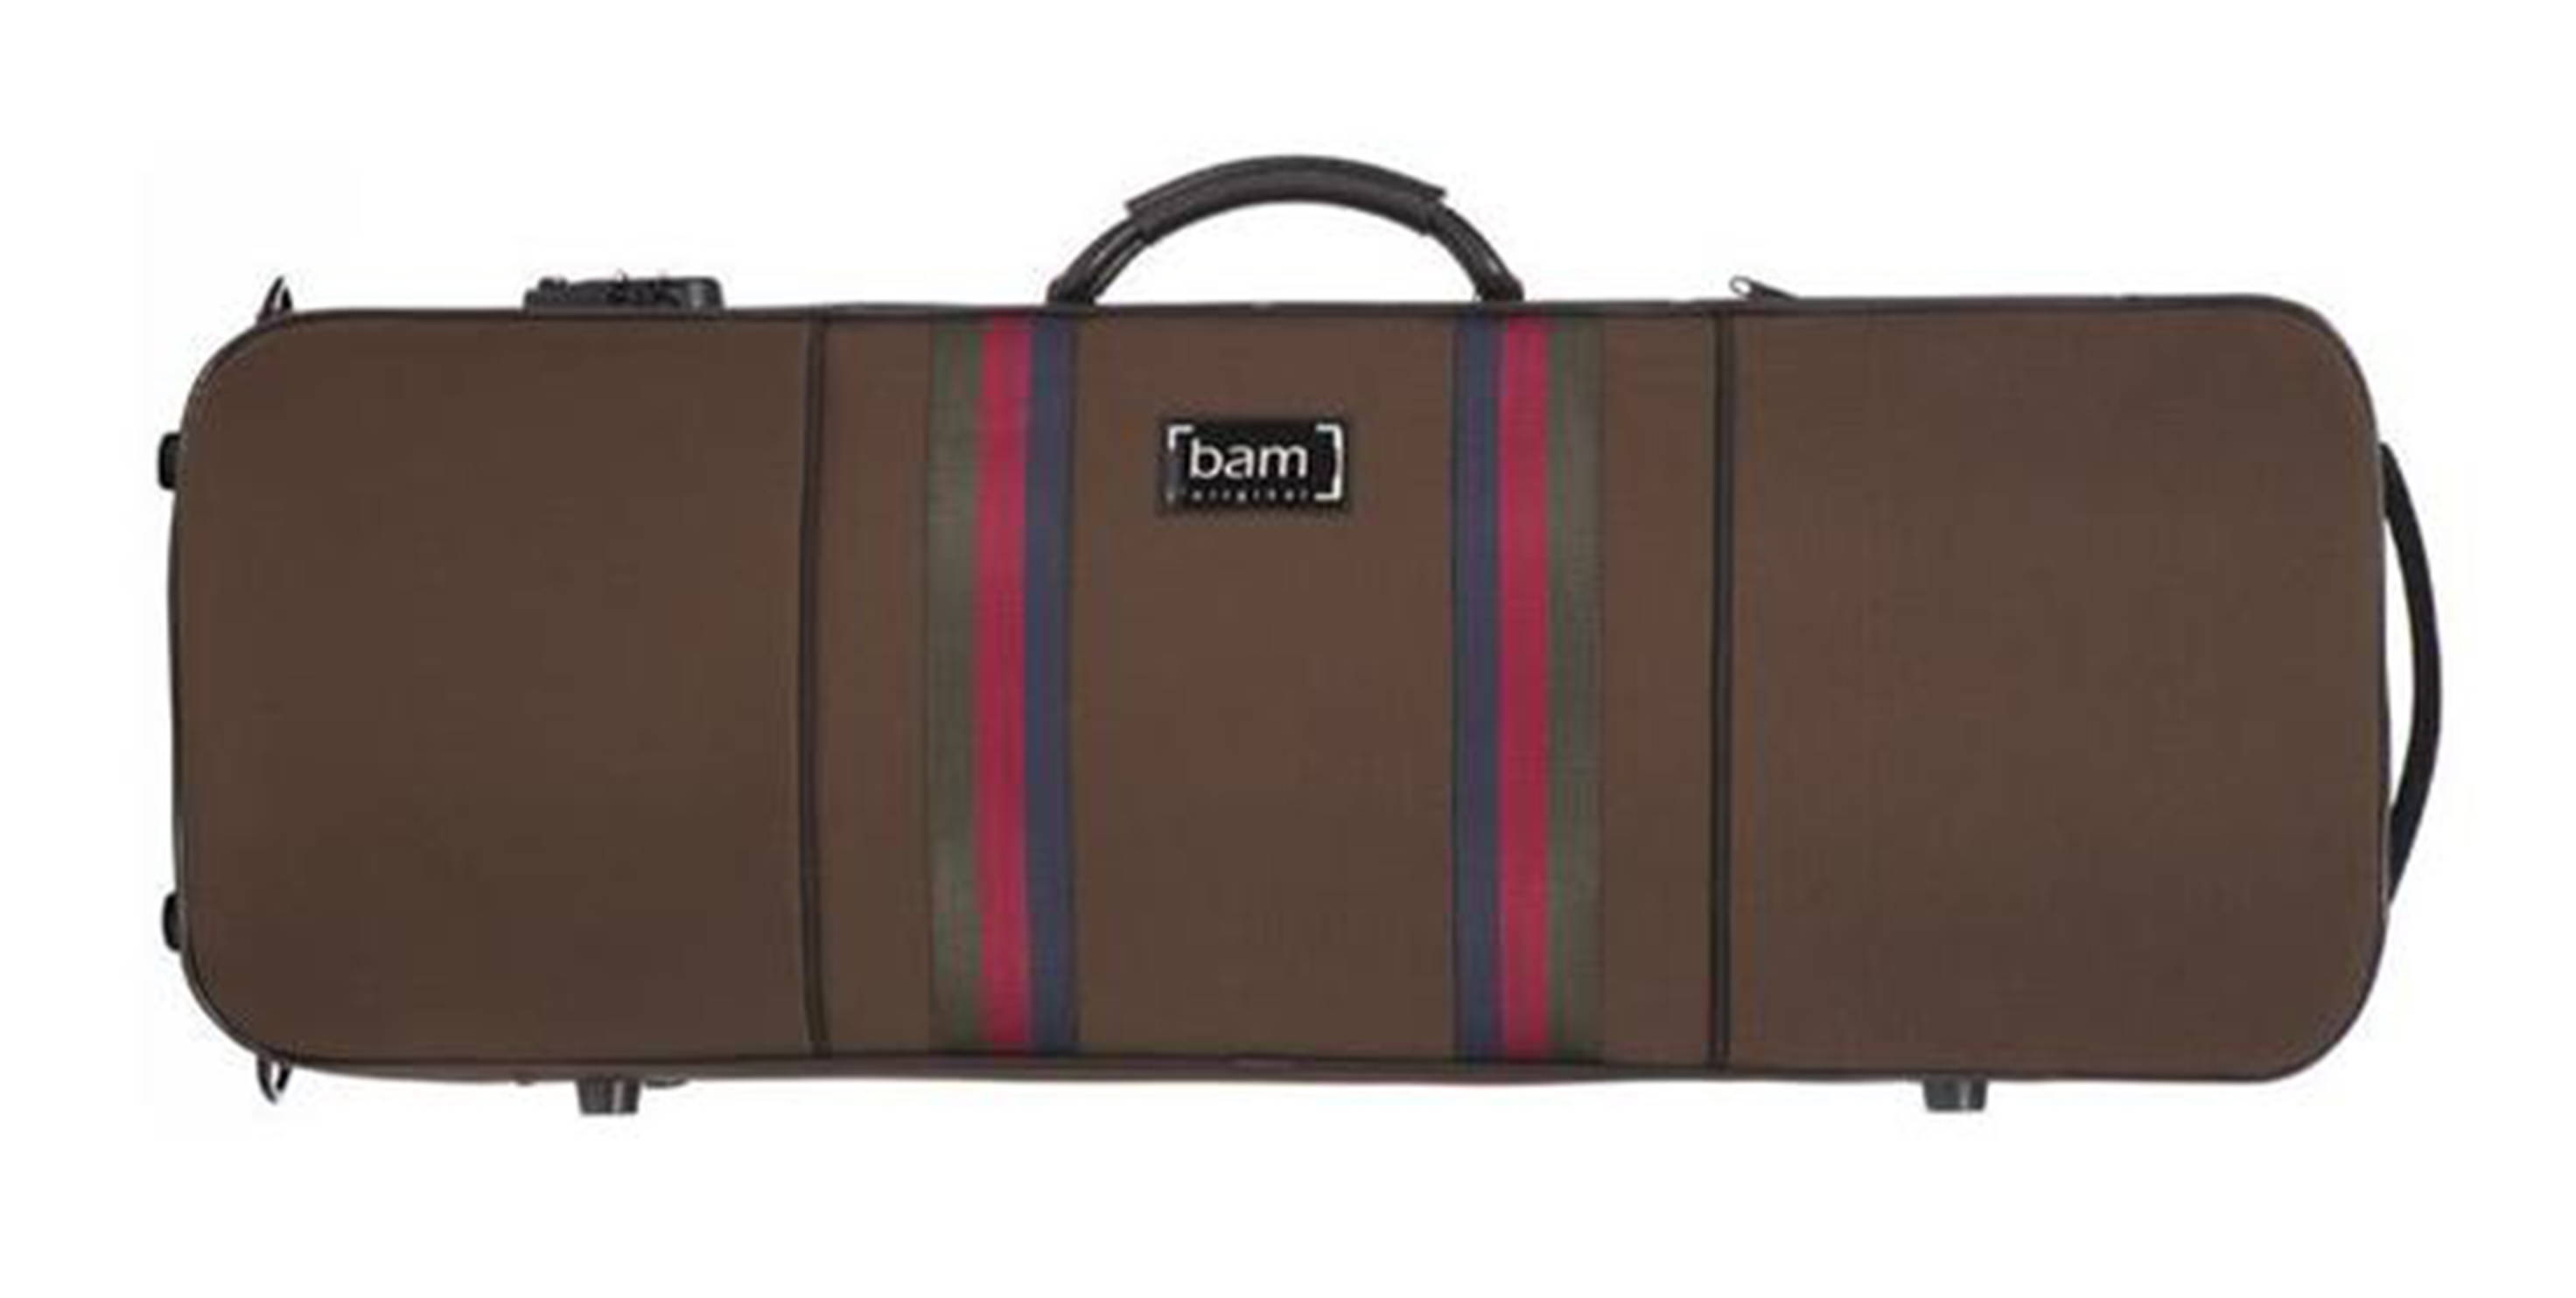 Bam St. Germain Violin Case